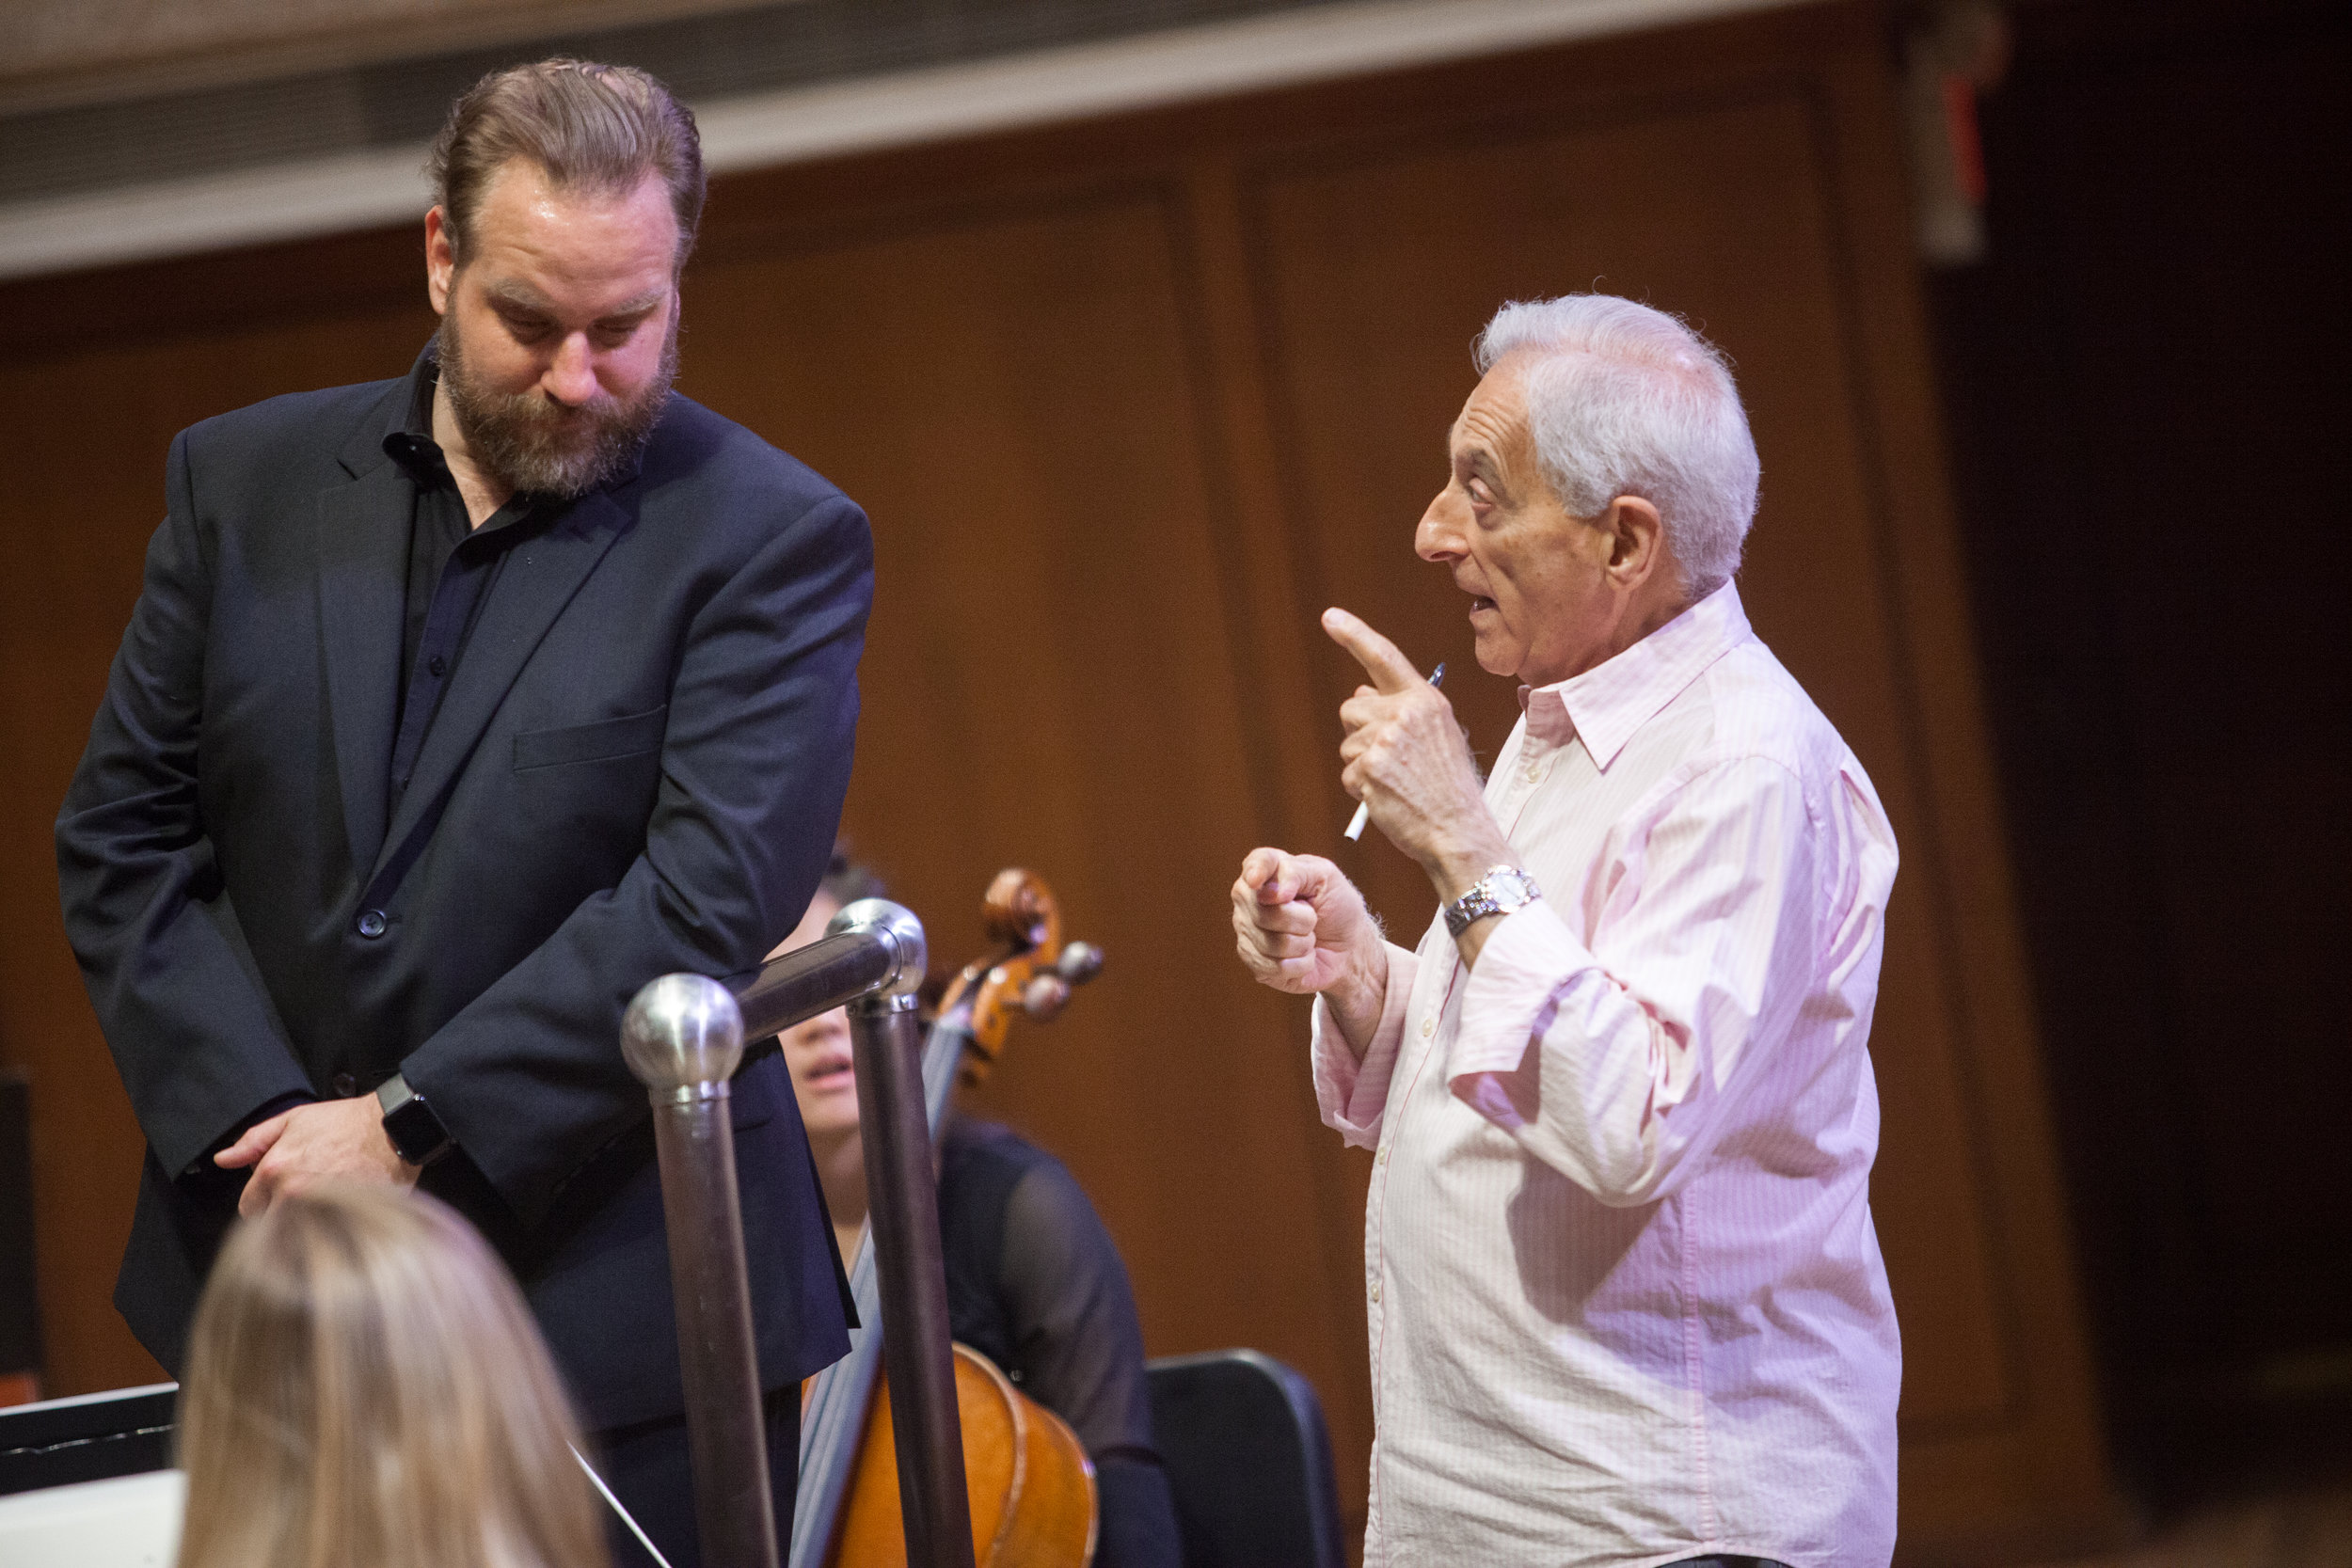 Dr. Robert DeSimone, Director of the Butler Opera Center, and Stefan Sanders, Music Director and Conductor of the Round Rock Symphony, collaborating on the inagural concert.